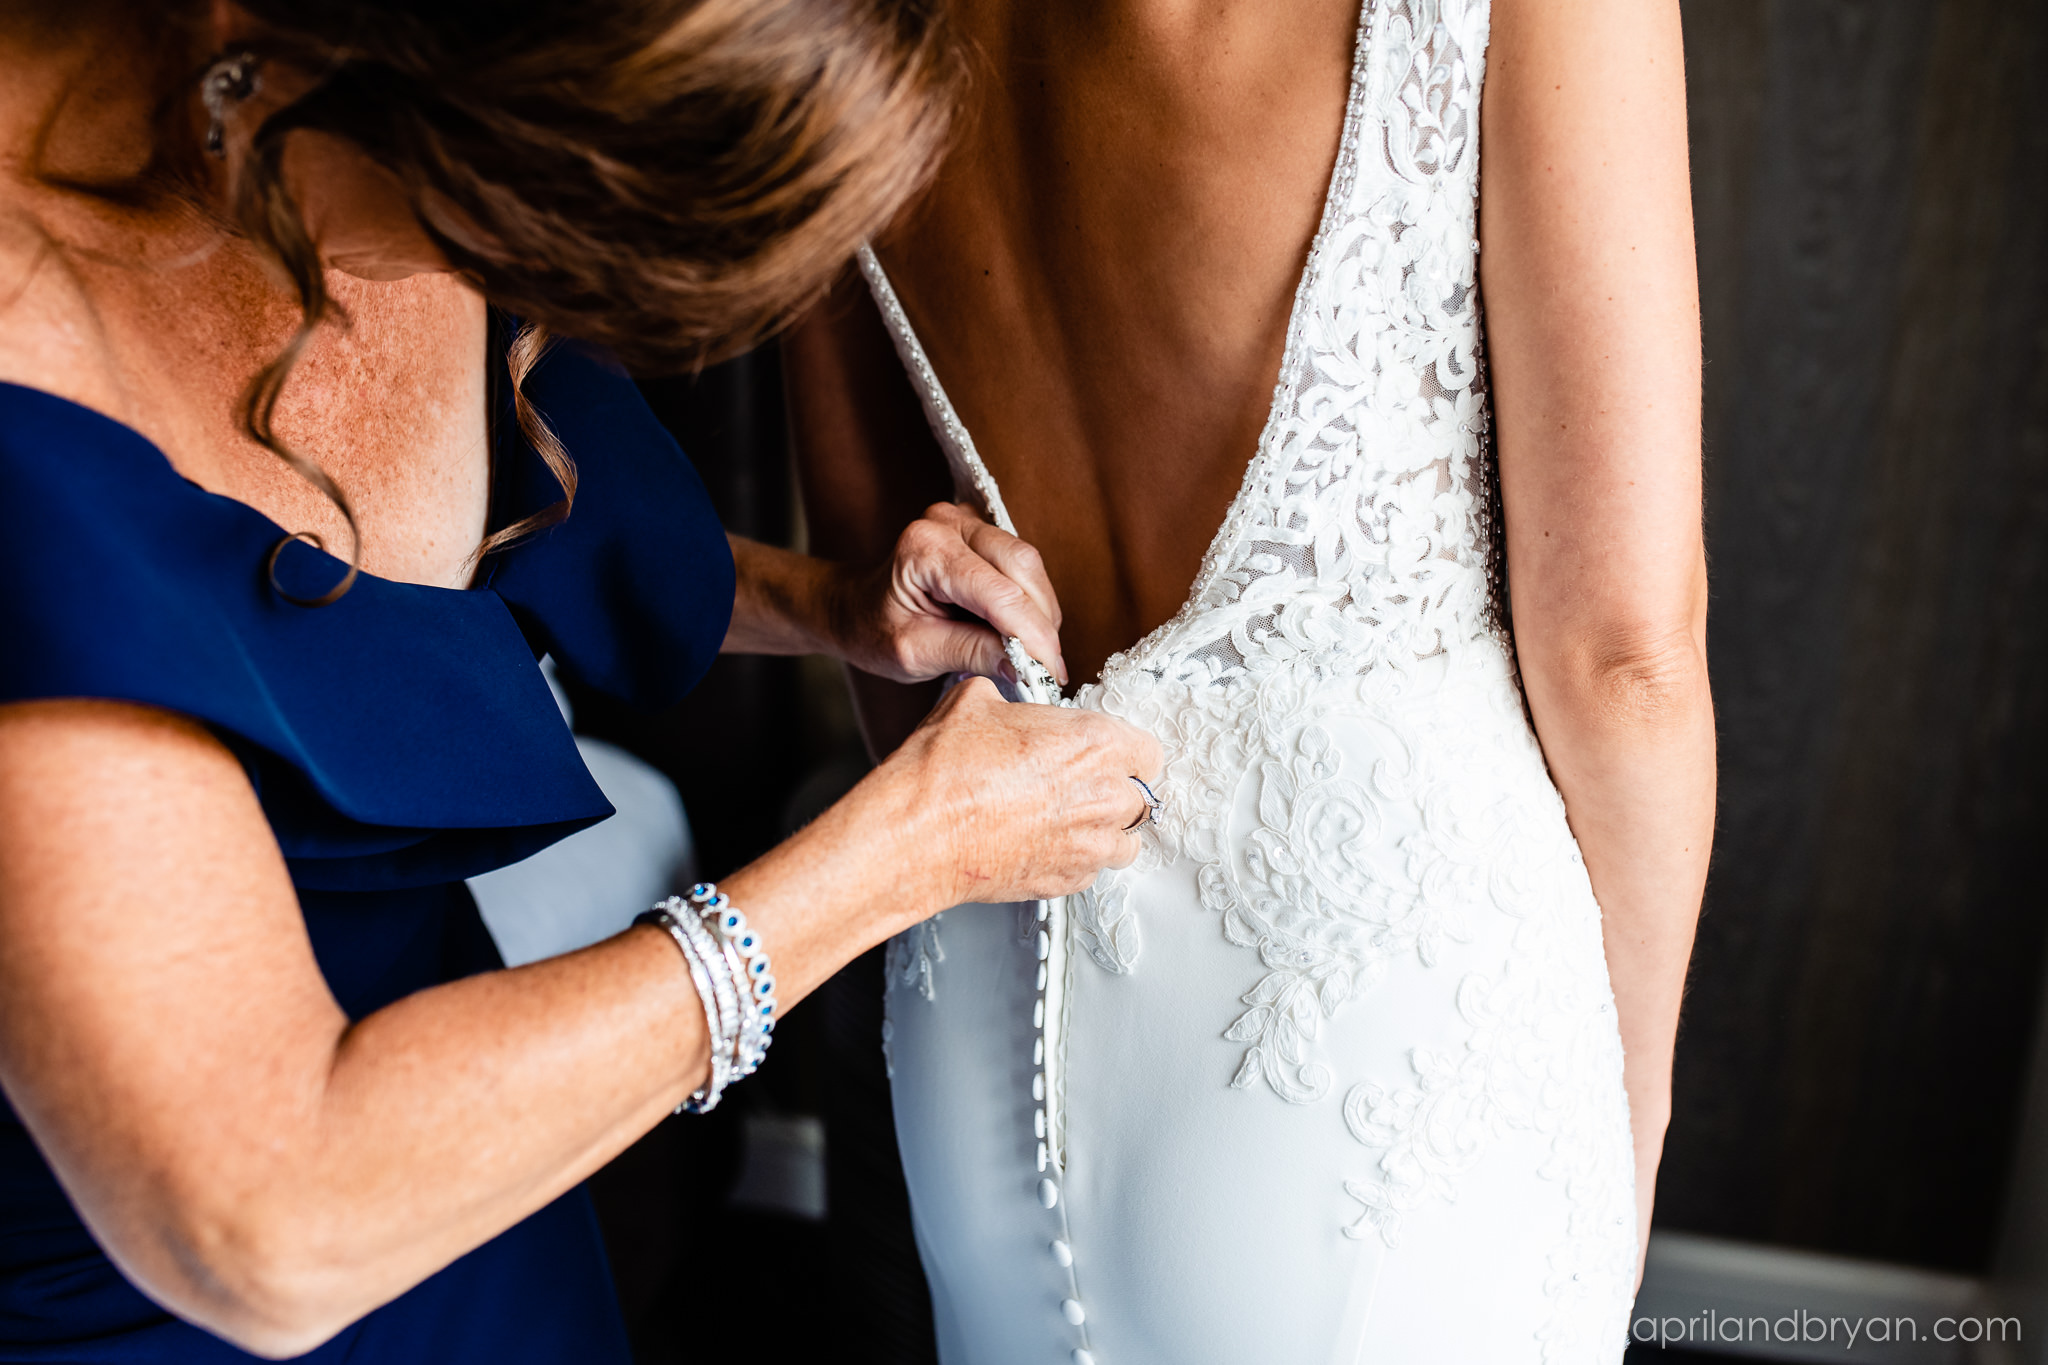 The final touches are added to the bride by her mother in the brides room at the Franklin Institute in Philadelphia. Shot by April & Bryan Photography. Featured on Dream Weddings.